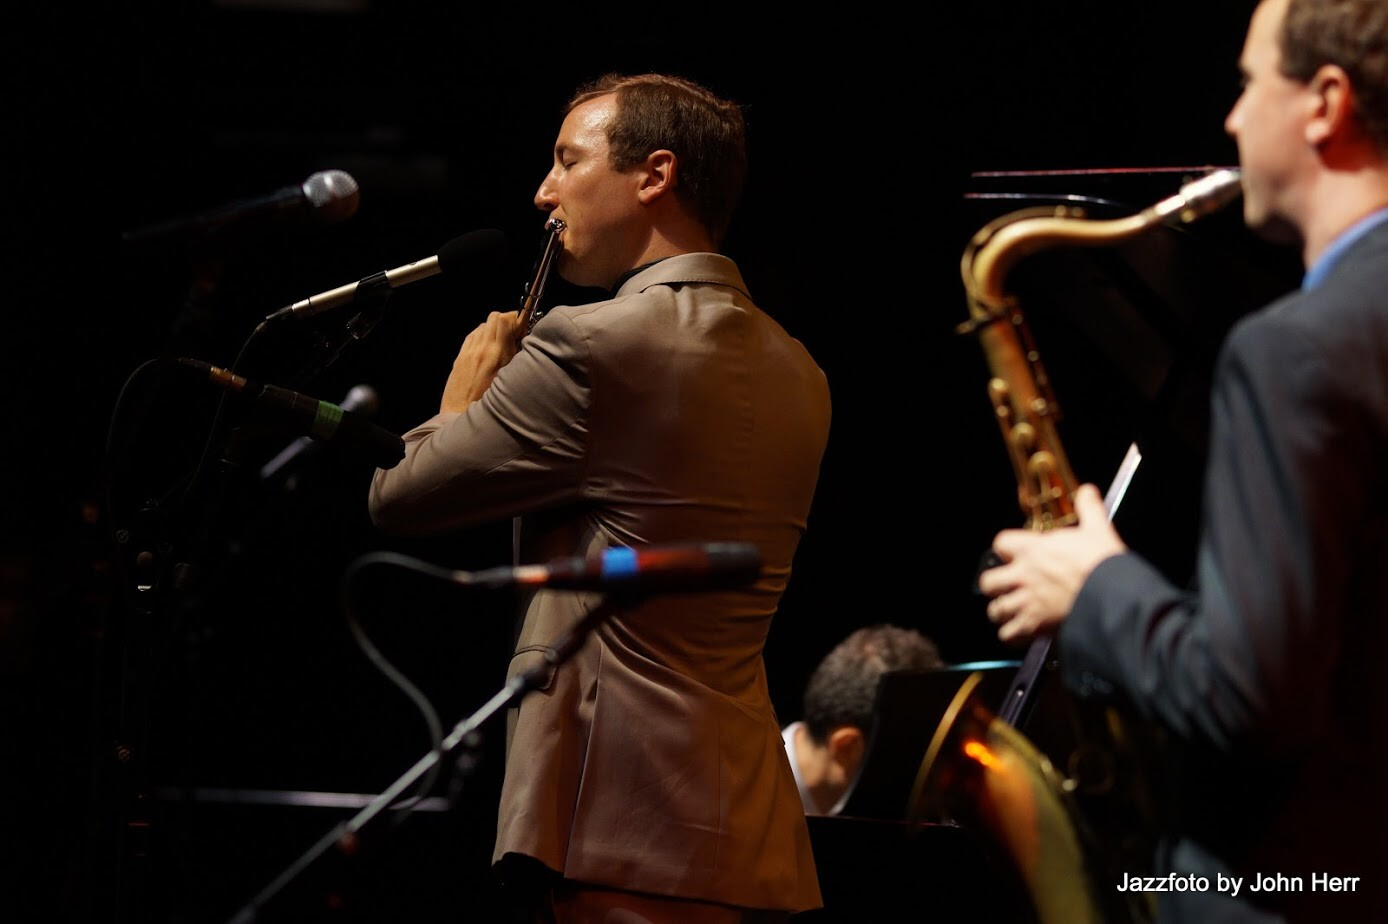 Peter & Will Anderson Live at Songbook Summit